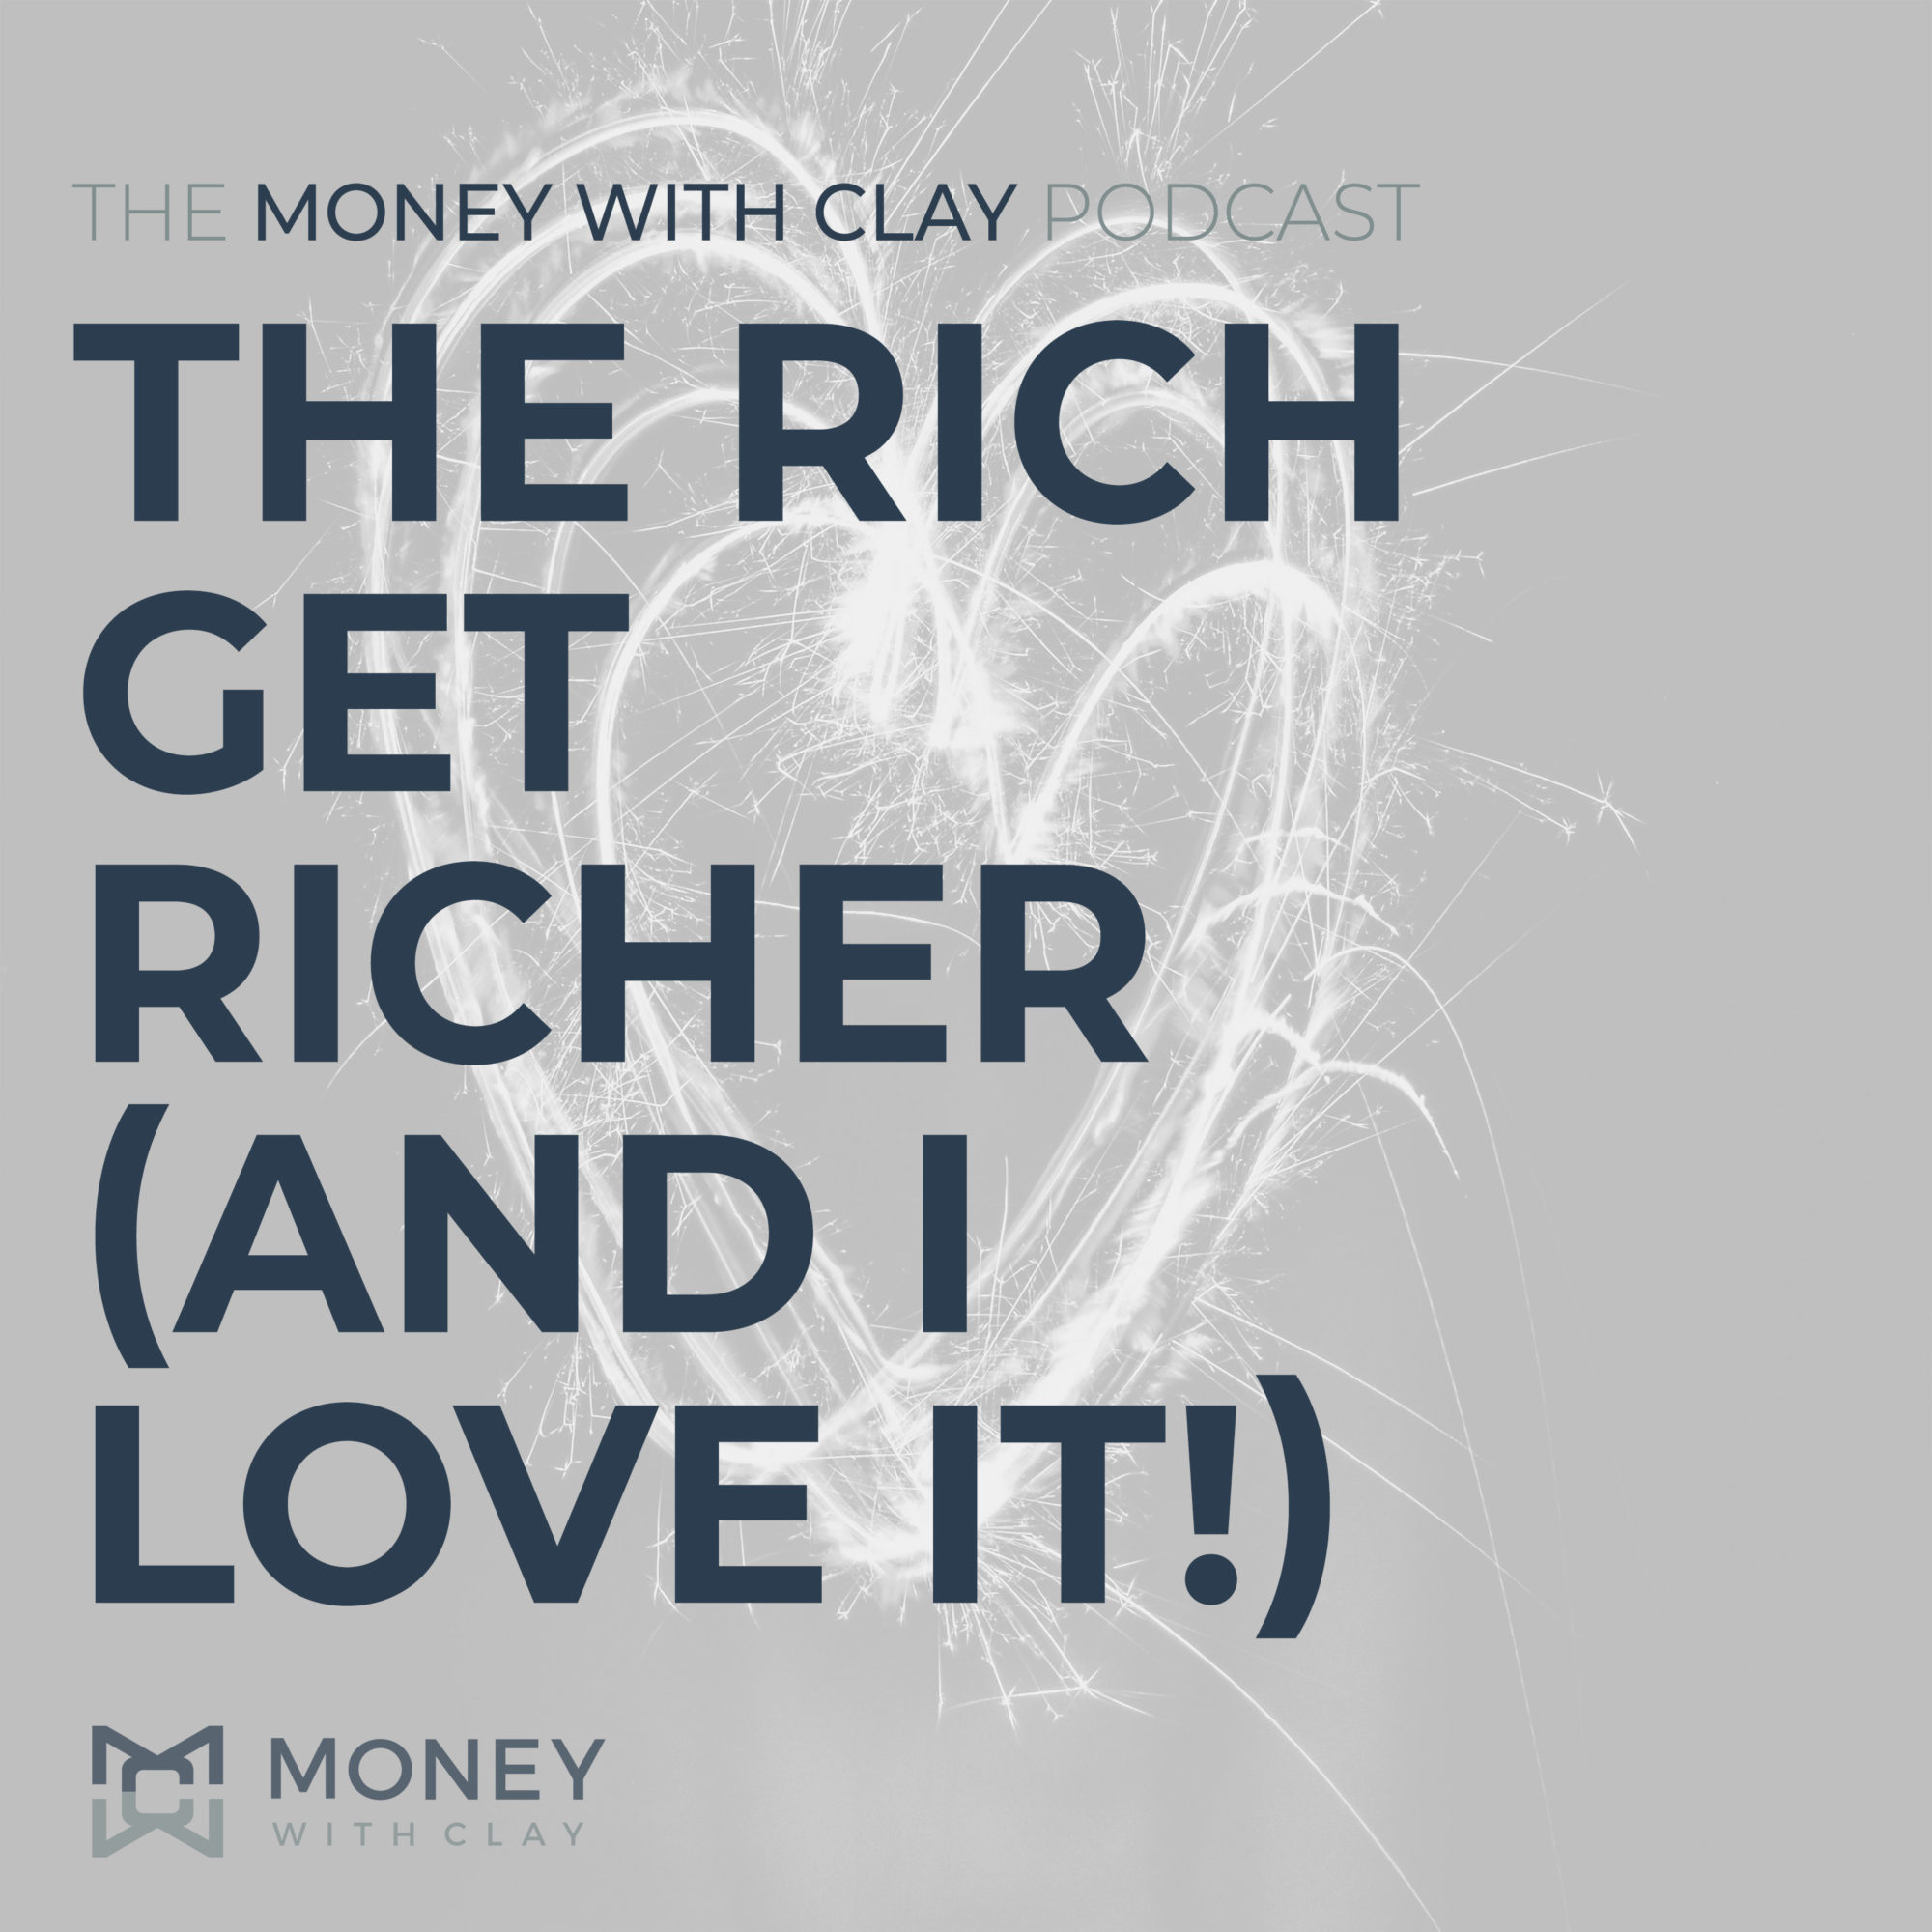 The Rich Get Richer (and i love it!)   #104